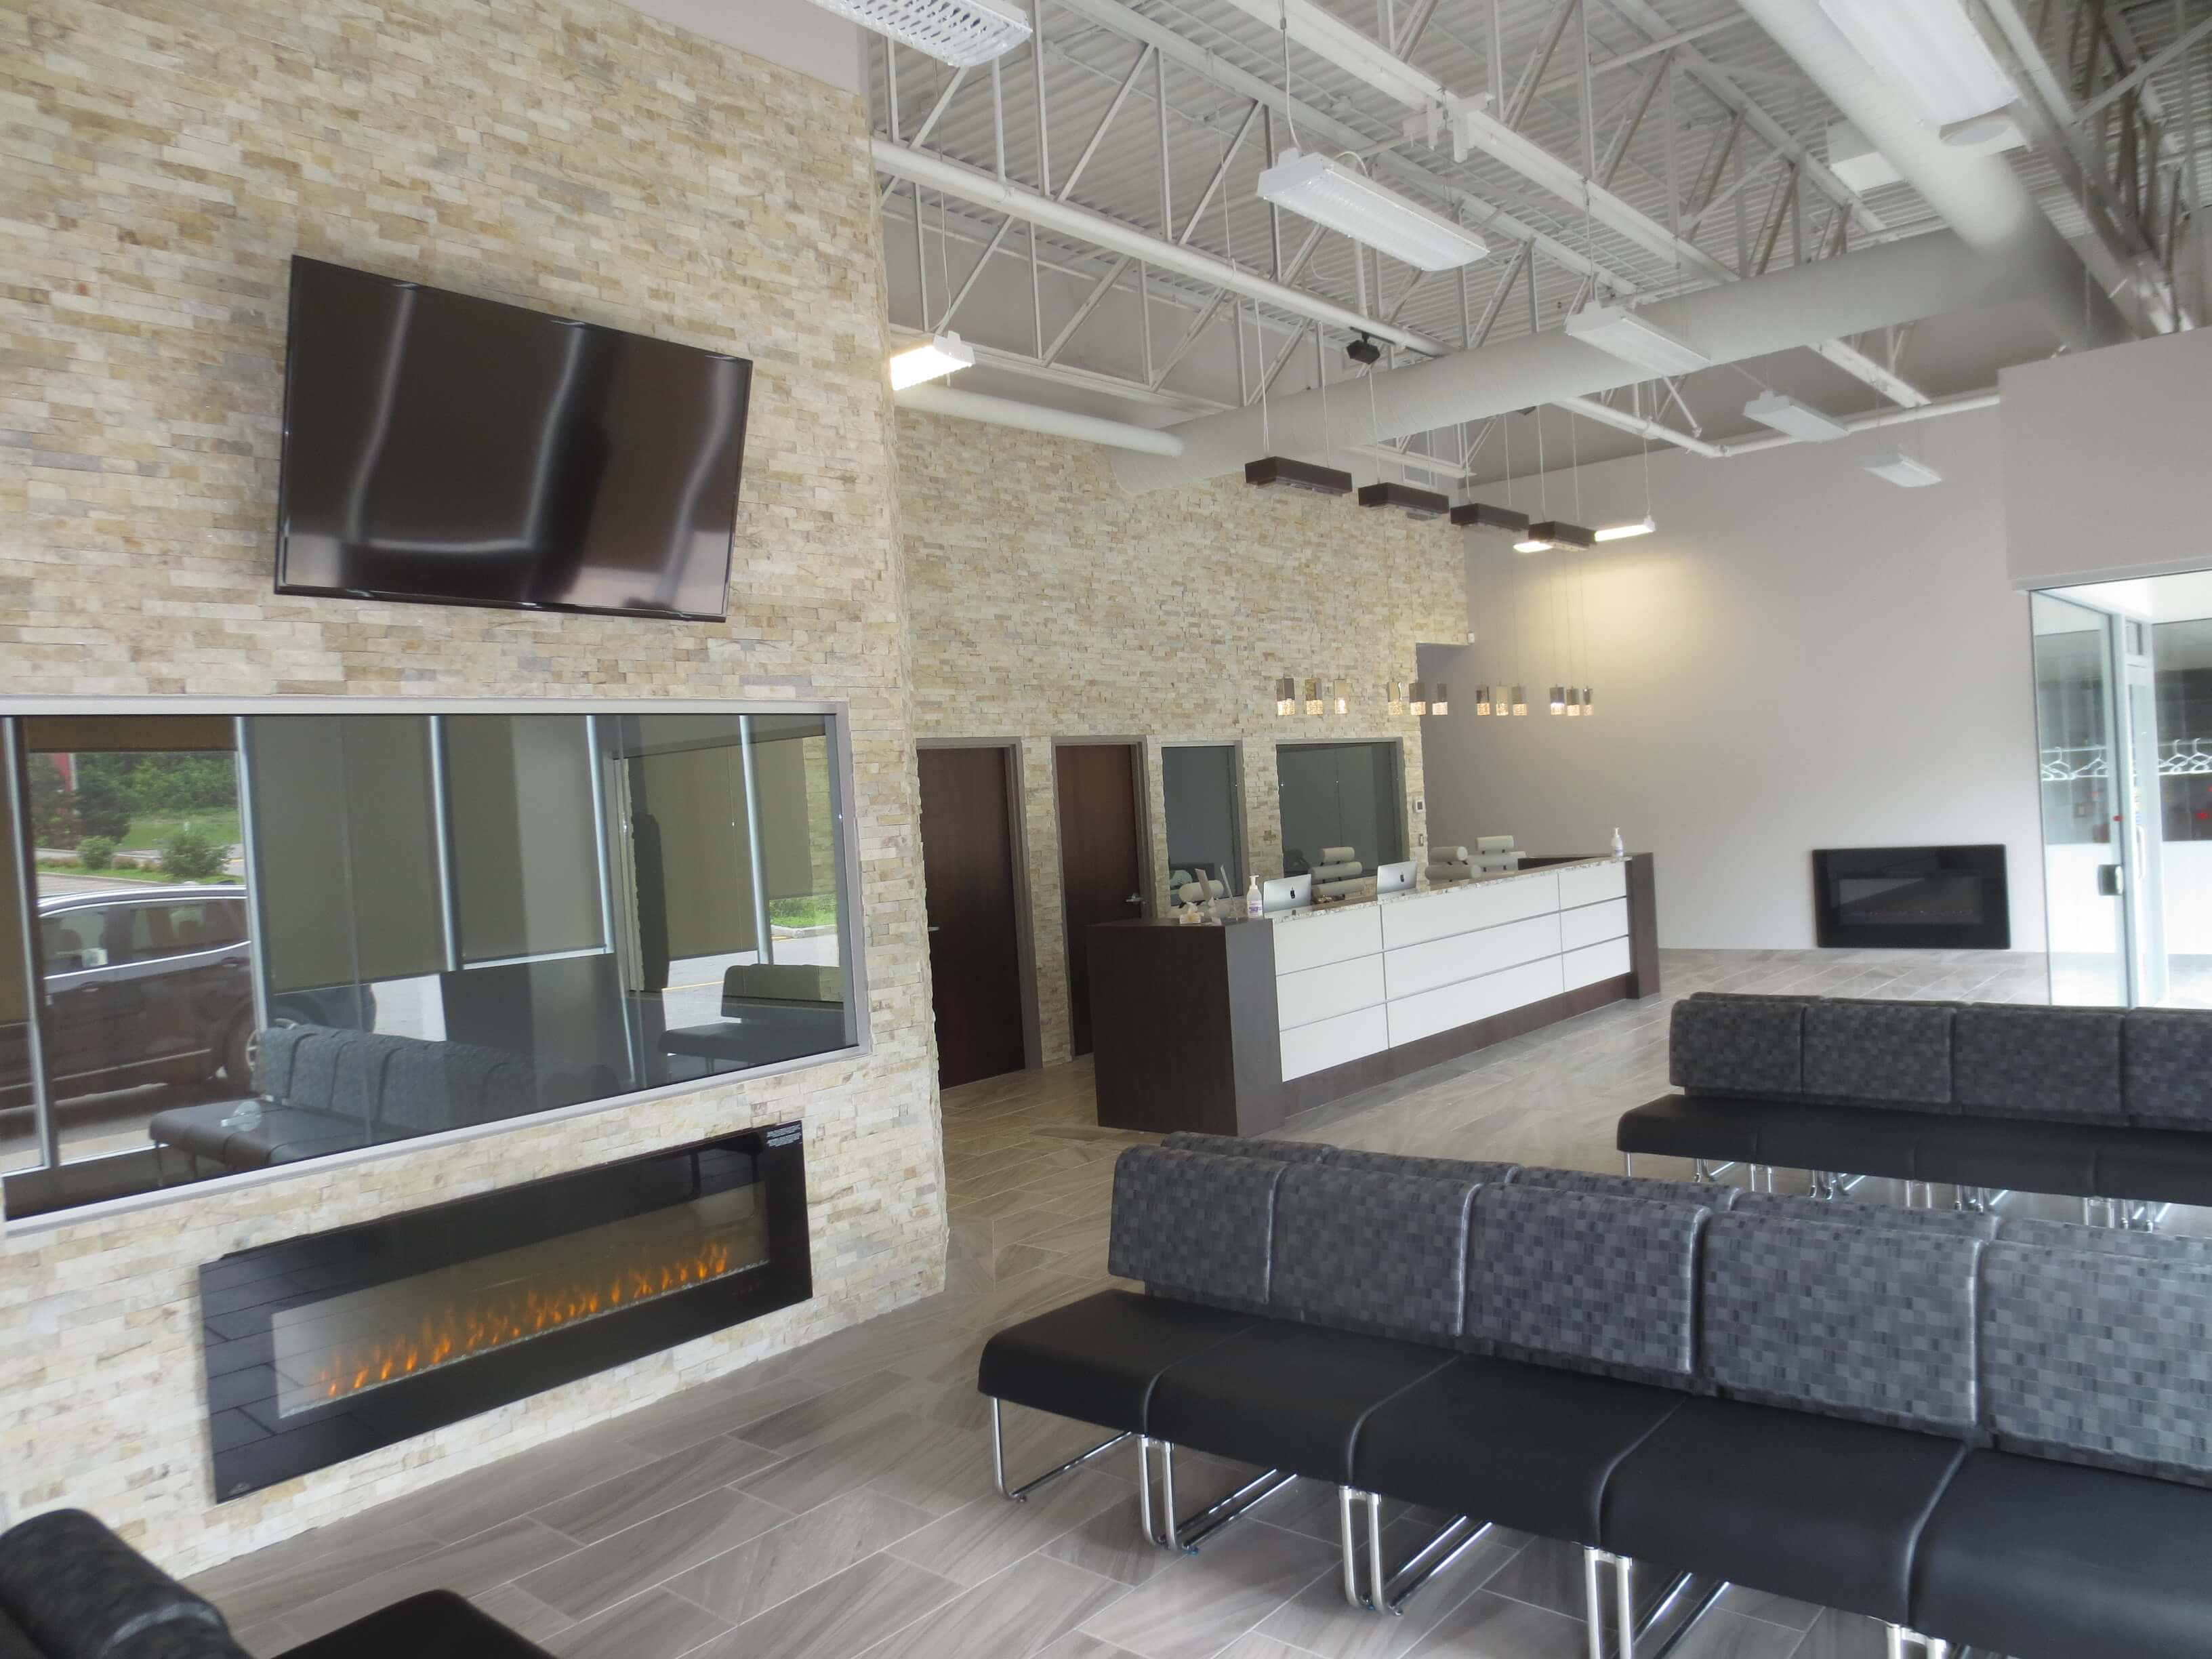 terlin-projects-jeanne-darc-medical-2-1